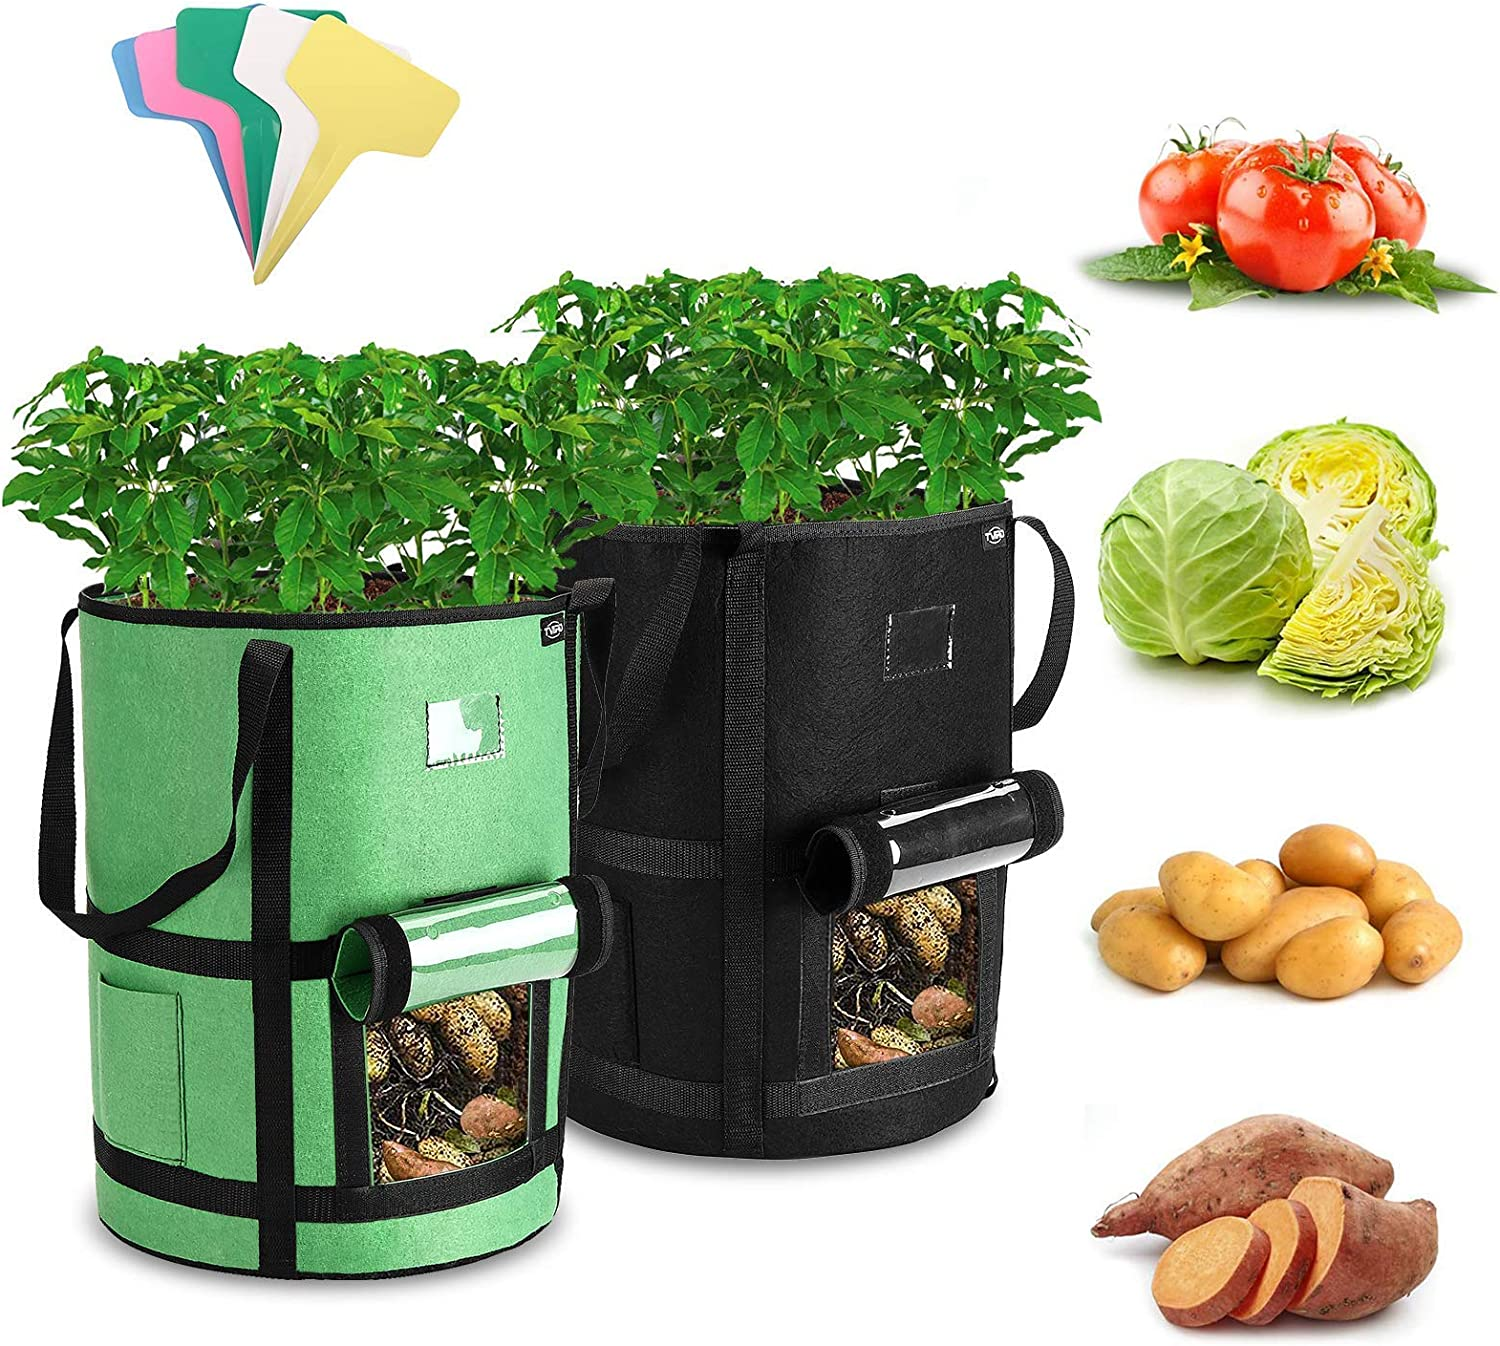 Tomato Upgraded 2 Pack 10 Gallon Potato Growing Bags Potato Planter Bags with Flap and Long Handles for Potato 2021 Upgraded Version Carrot with 5 Plant Lables Tvird Potato Grow Bags